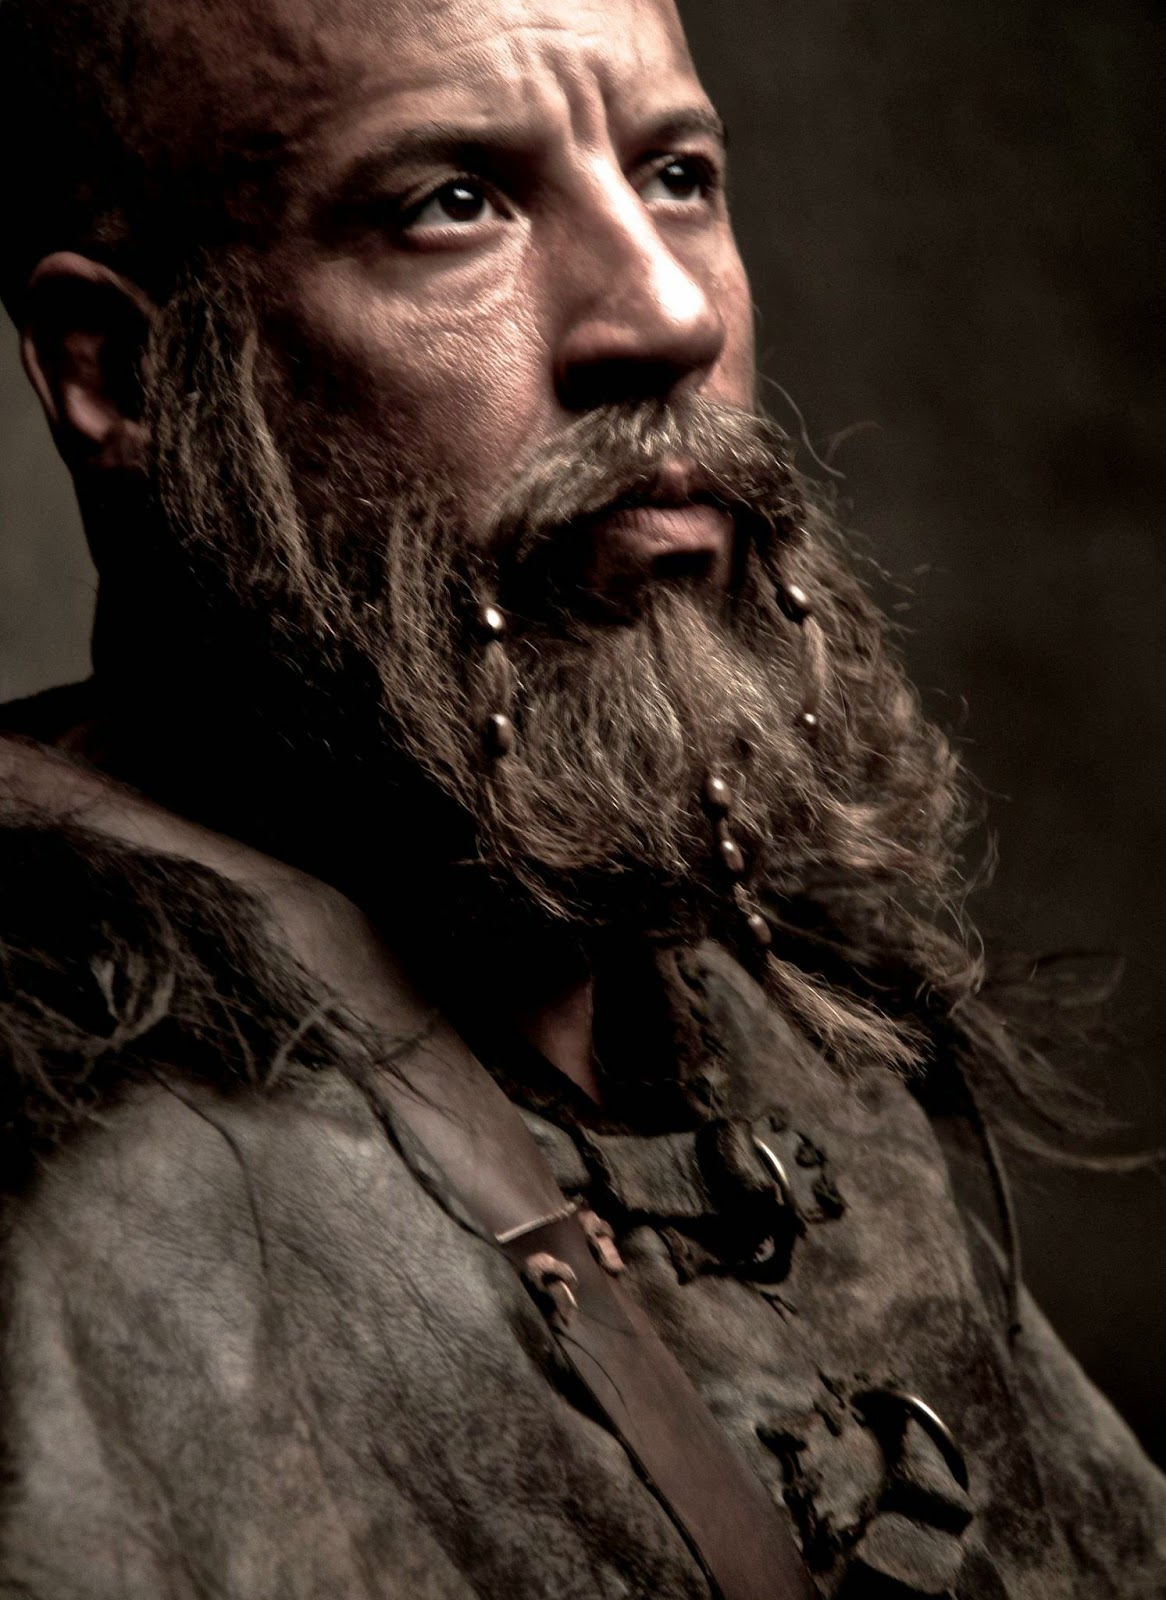 The Last Witch Hunter Movie Starring Vin Diesel : Teaser ...